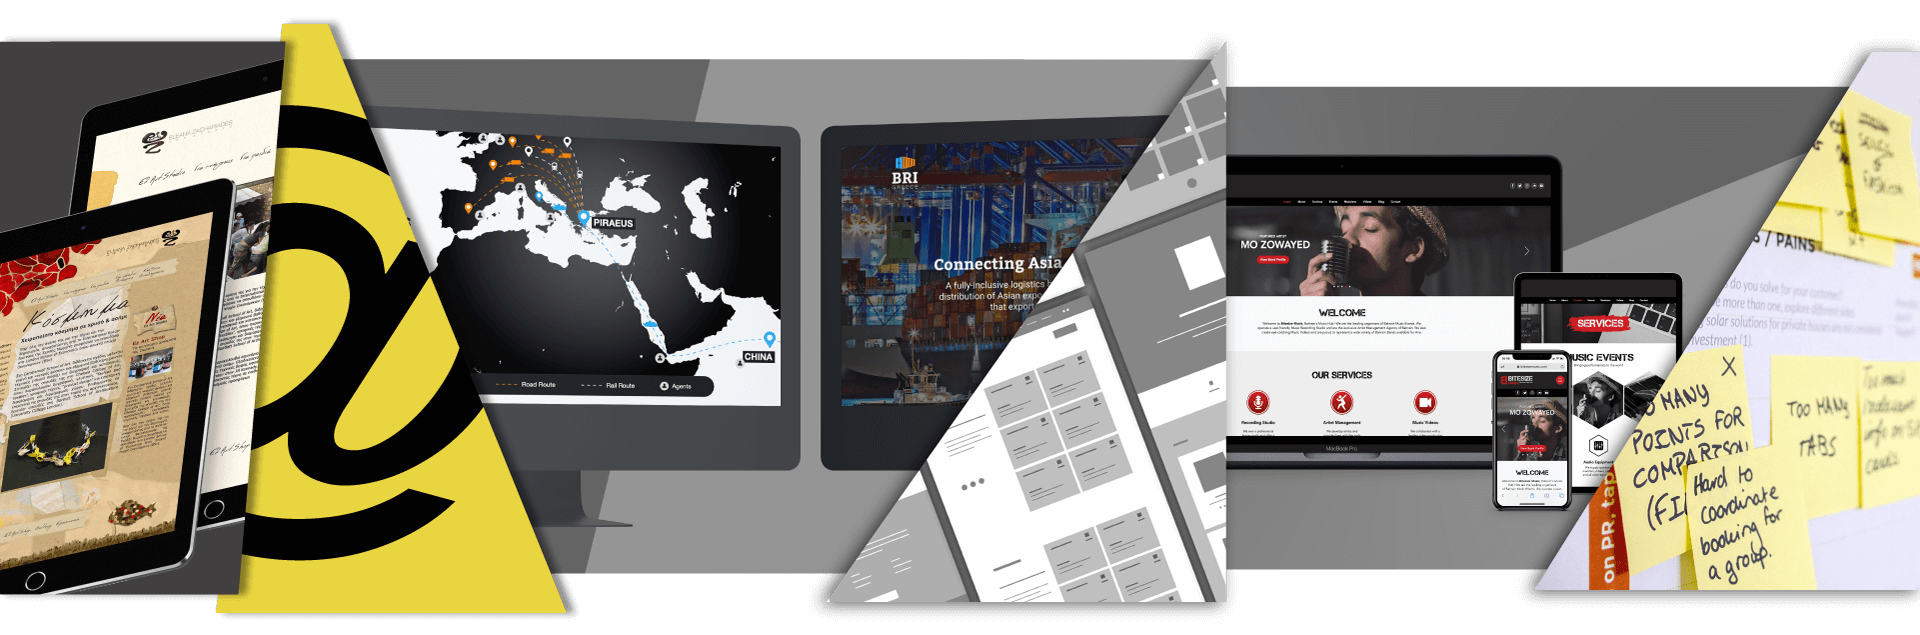 Website design and development services in Cyprus - devices displaying responsive UI/UX websites designed by Reform.